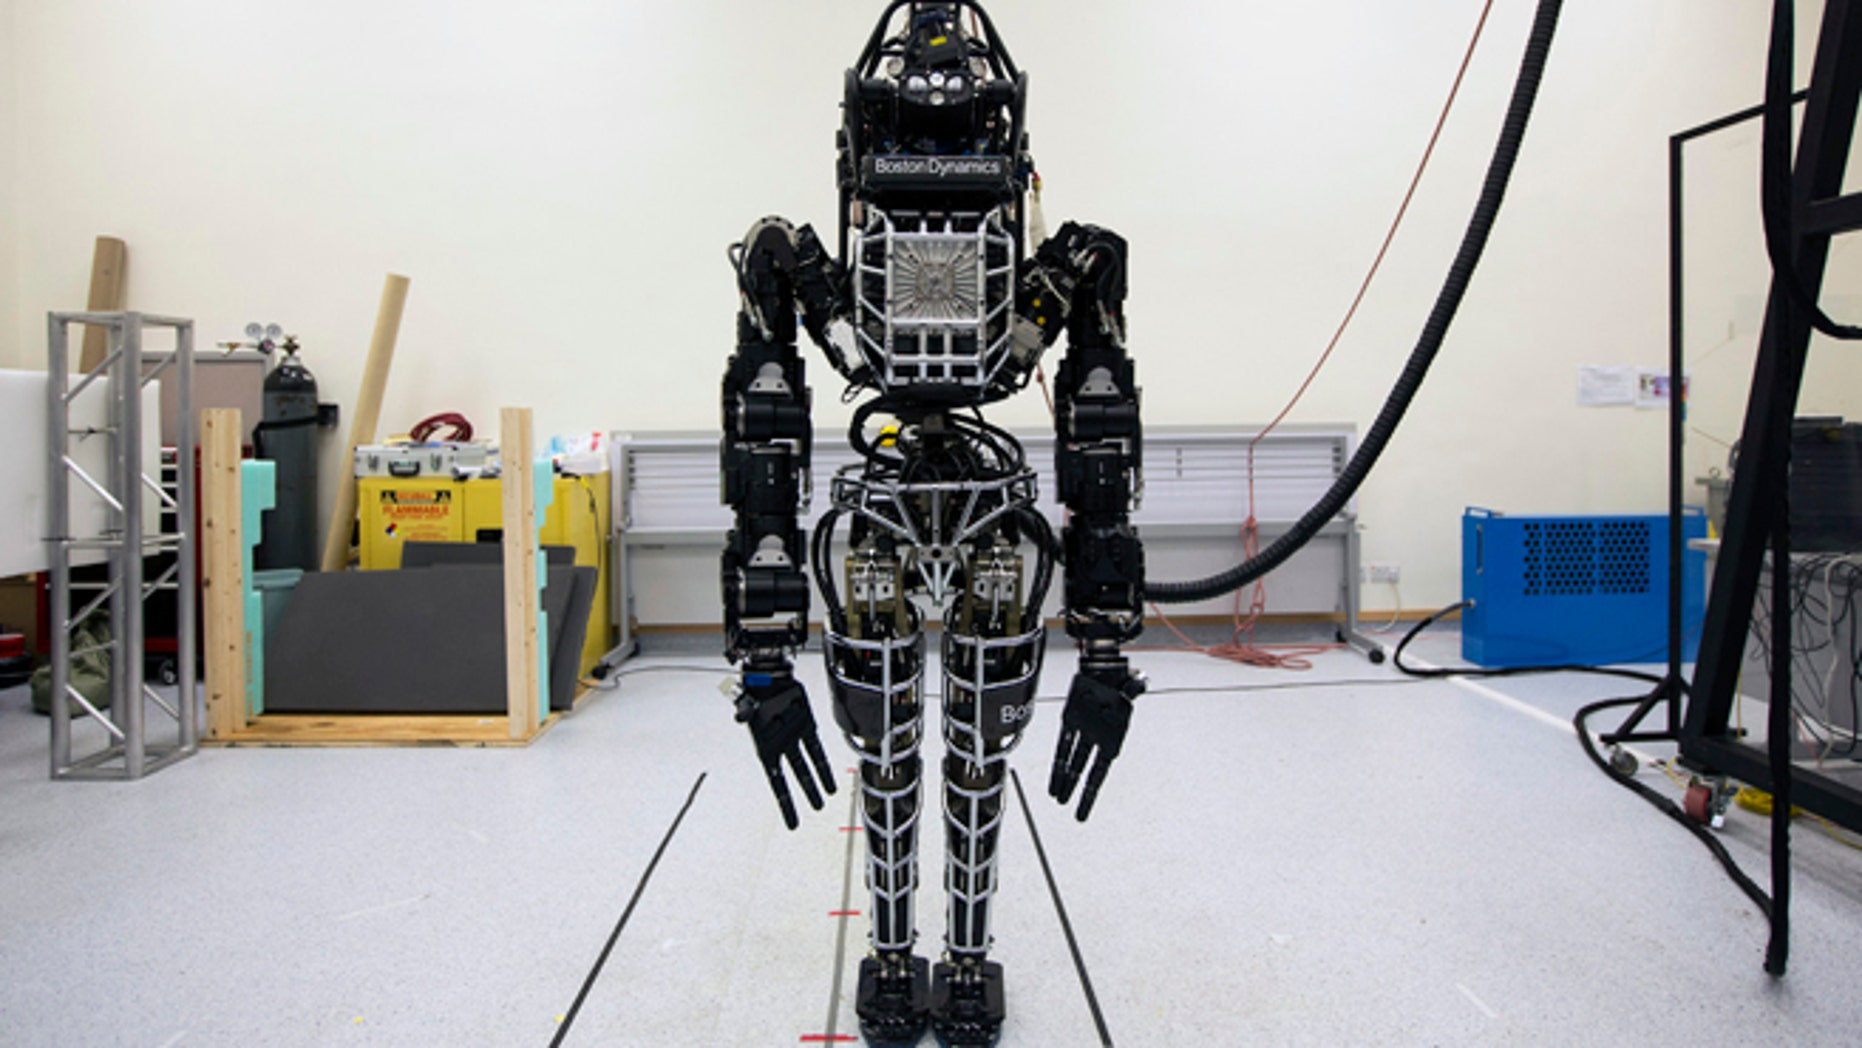 """Bipedal humanoid robot """"Atlas"""", primarily developed by the American robotics company Boston Dynamics, is presented to the media during a news conference at the University of Hong Kong October 17, 2013. Google recently acquired the company."""